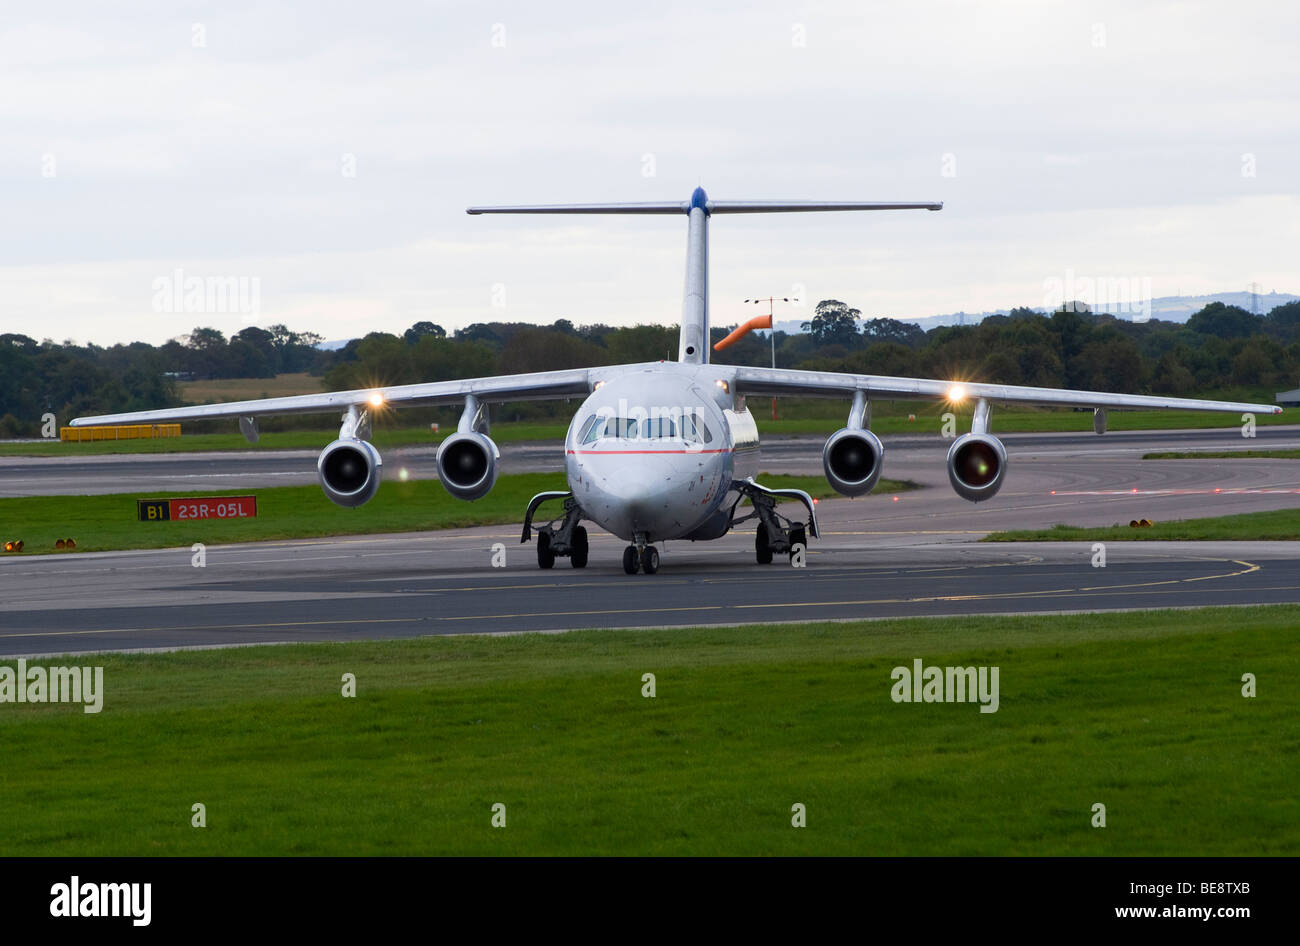 Brussels Airlines Avro RJ85 BAe 146 Jet Airliner Taxiing at Manchester Ringway Airport After Landing England United - Stock Image